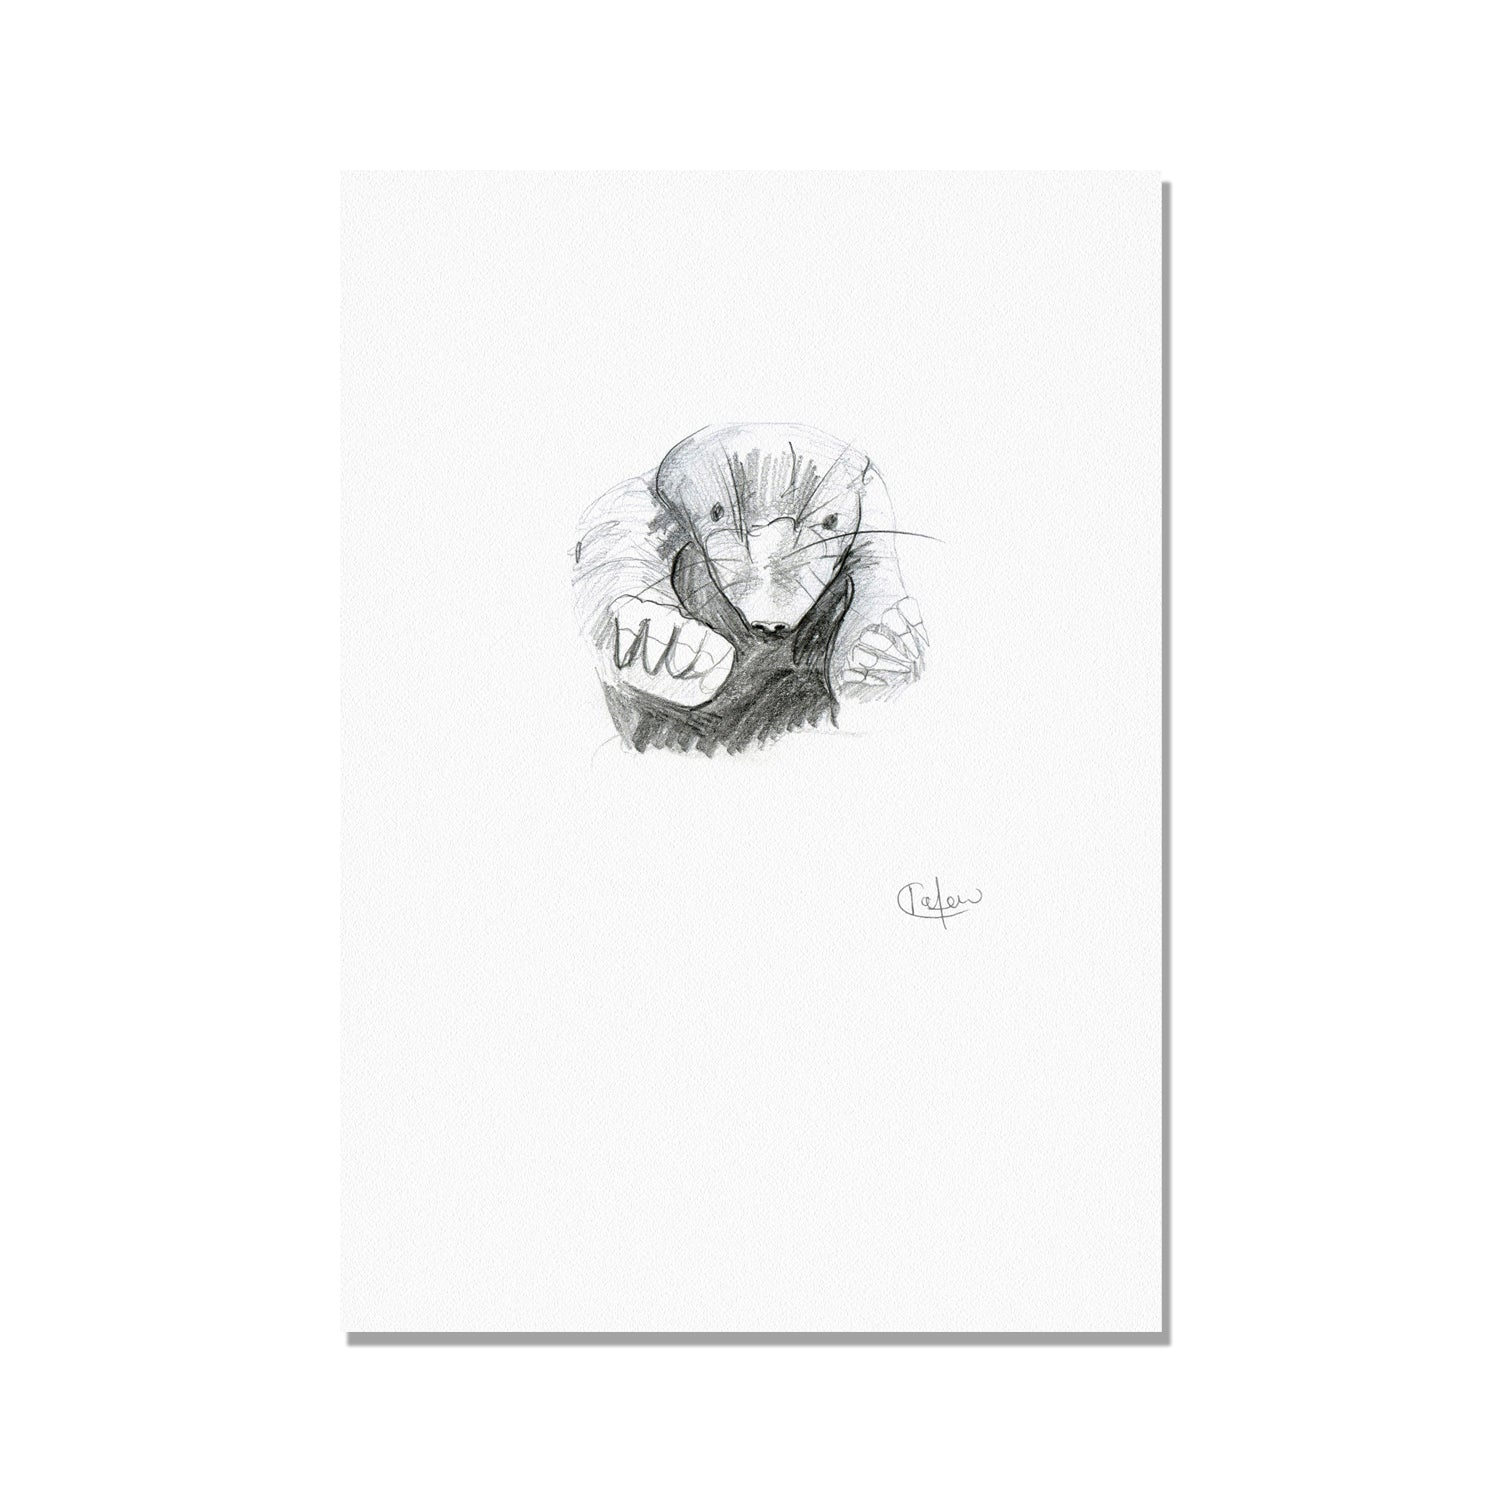 Pencil Mole Illustration Print by Kate Moby on OOSTOR.com